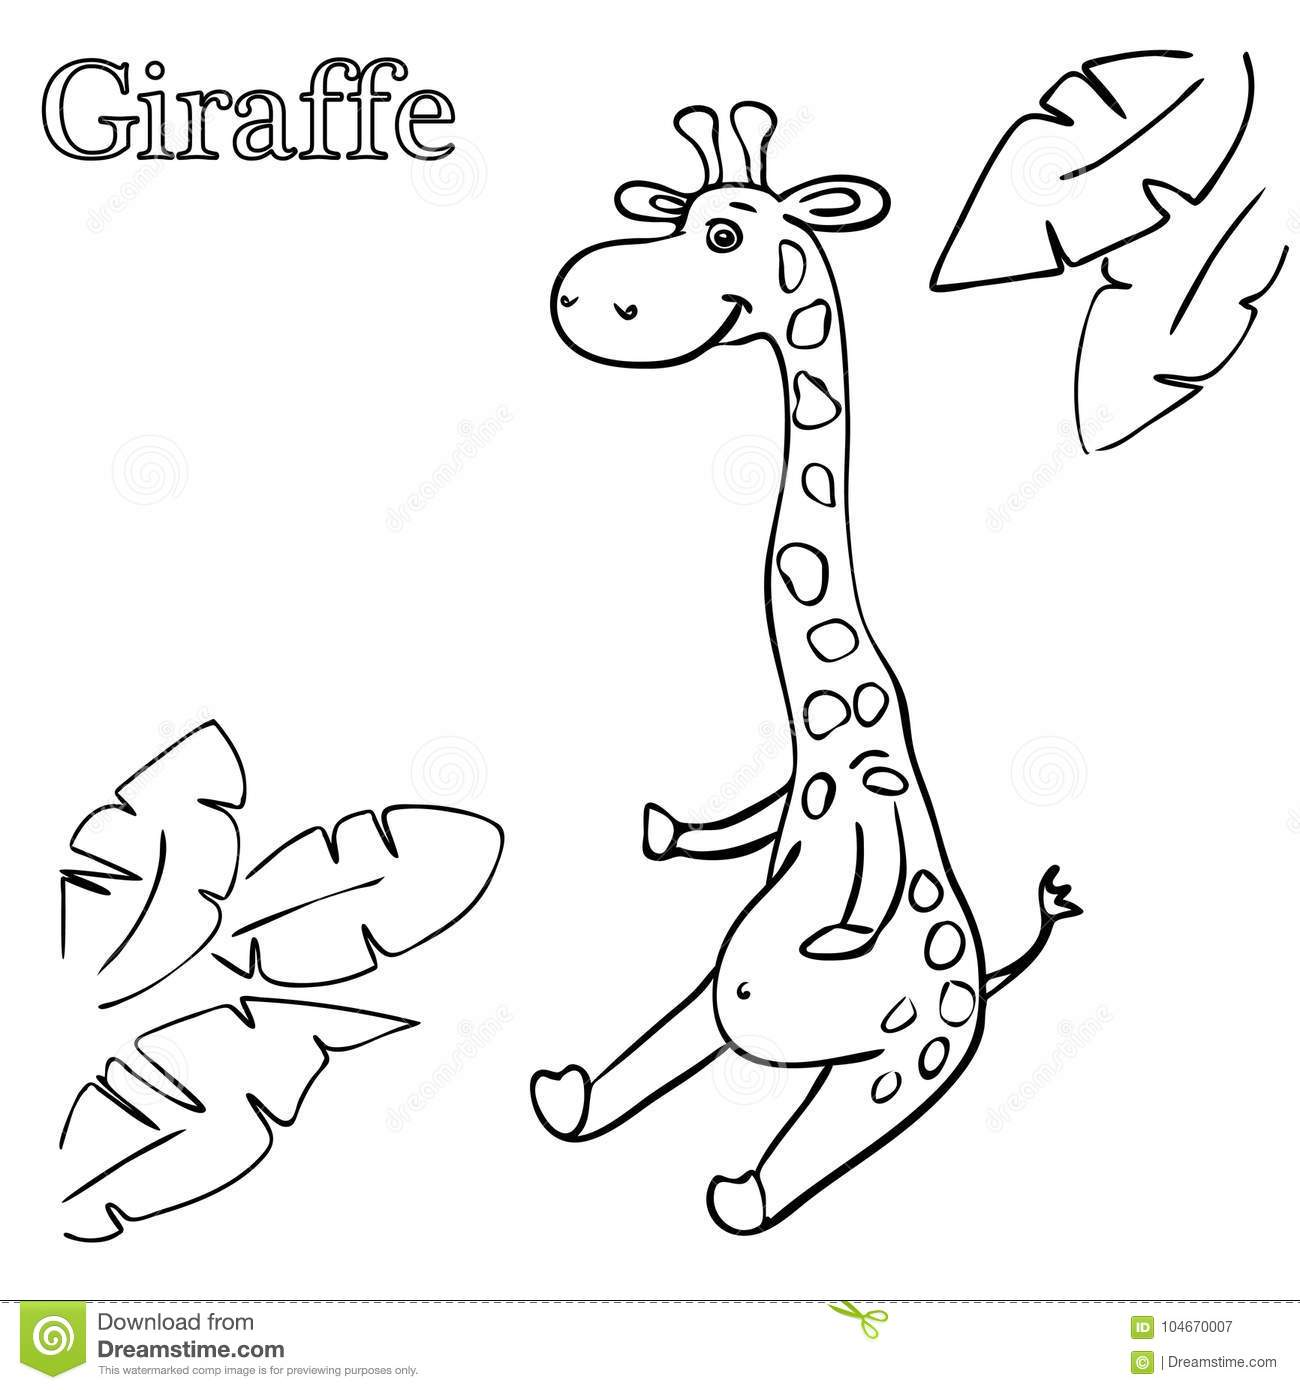 Giraffe Coloring Pages For Children Eps 10 Stock Illustration